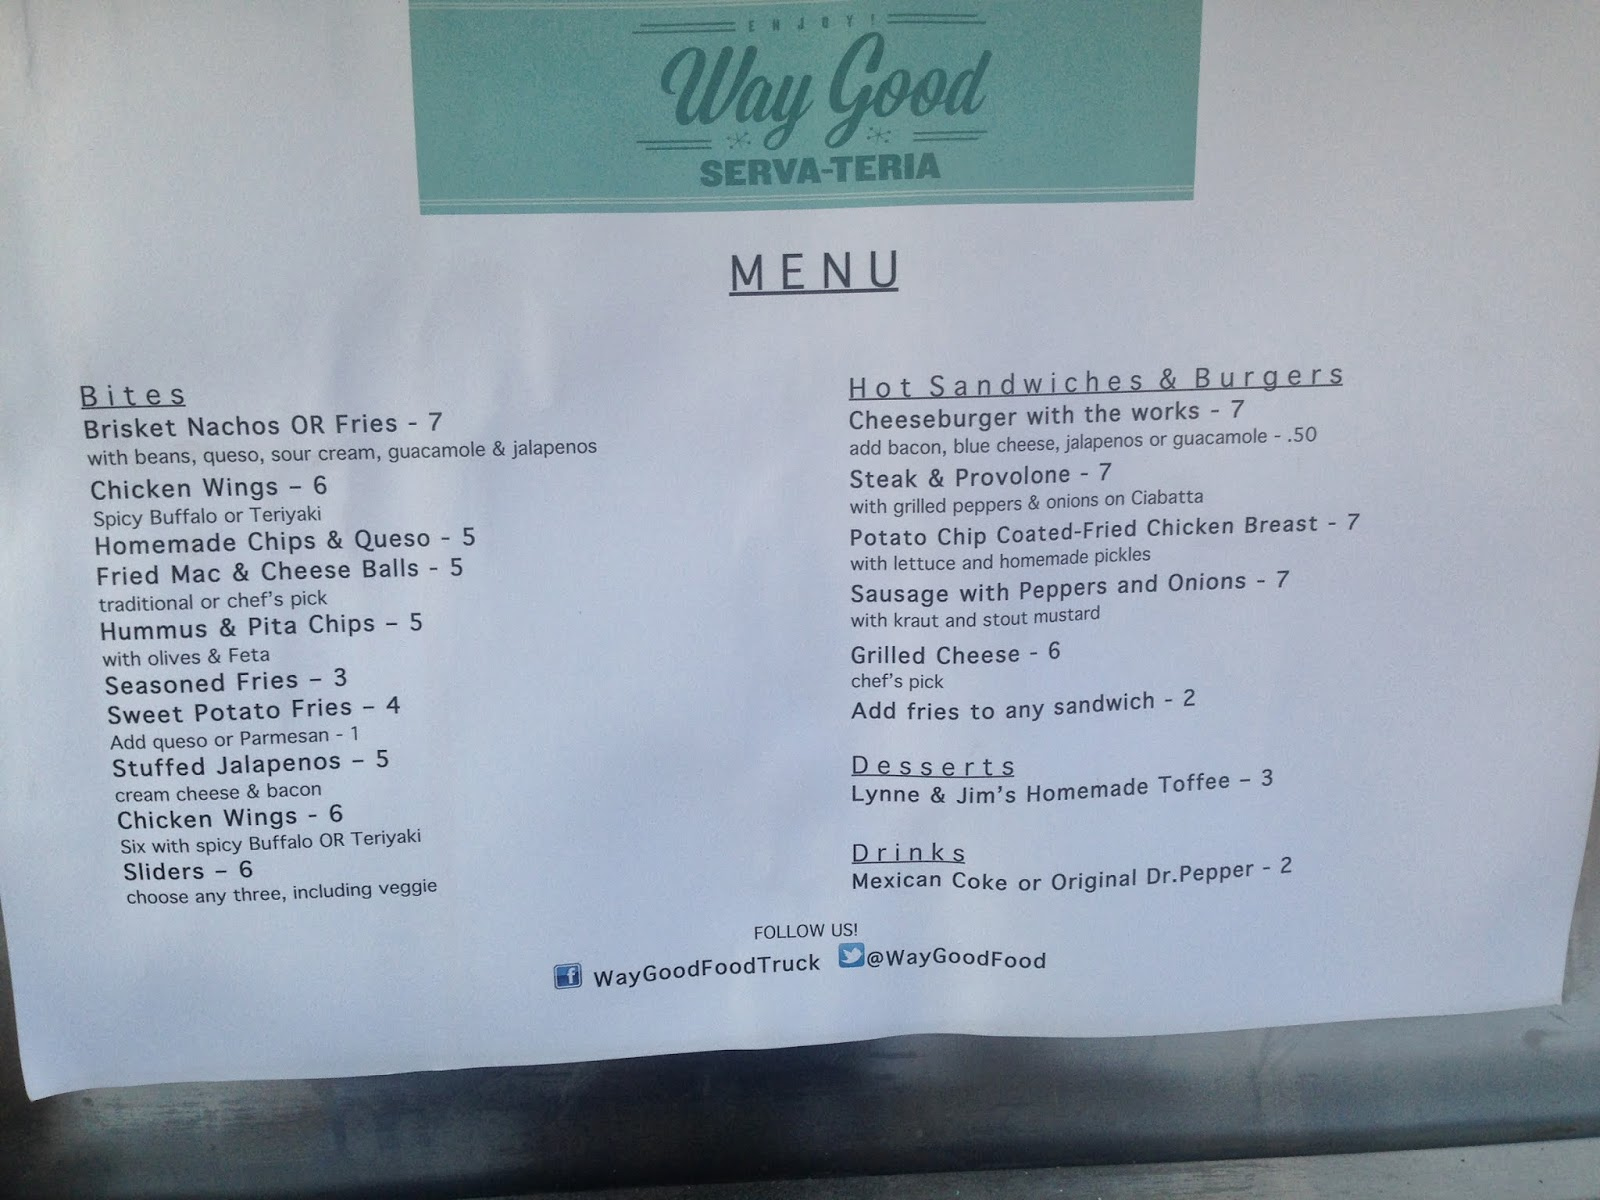 Way Good Serva-Teria, Food Truck Houston TX Menu